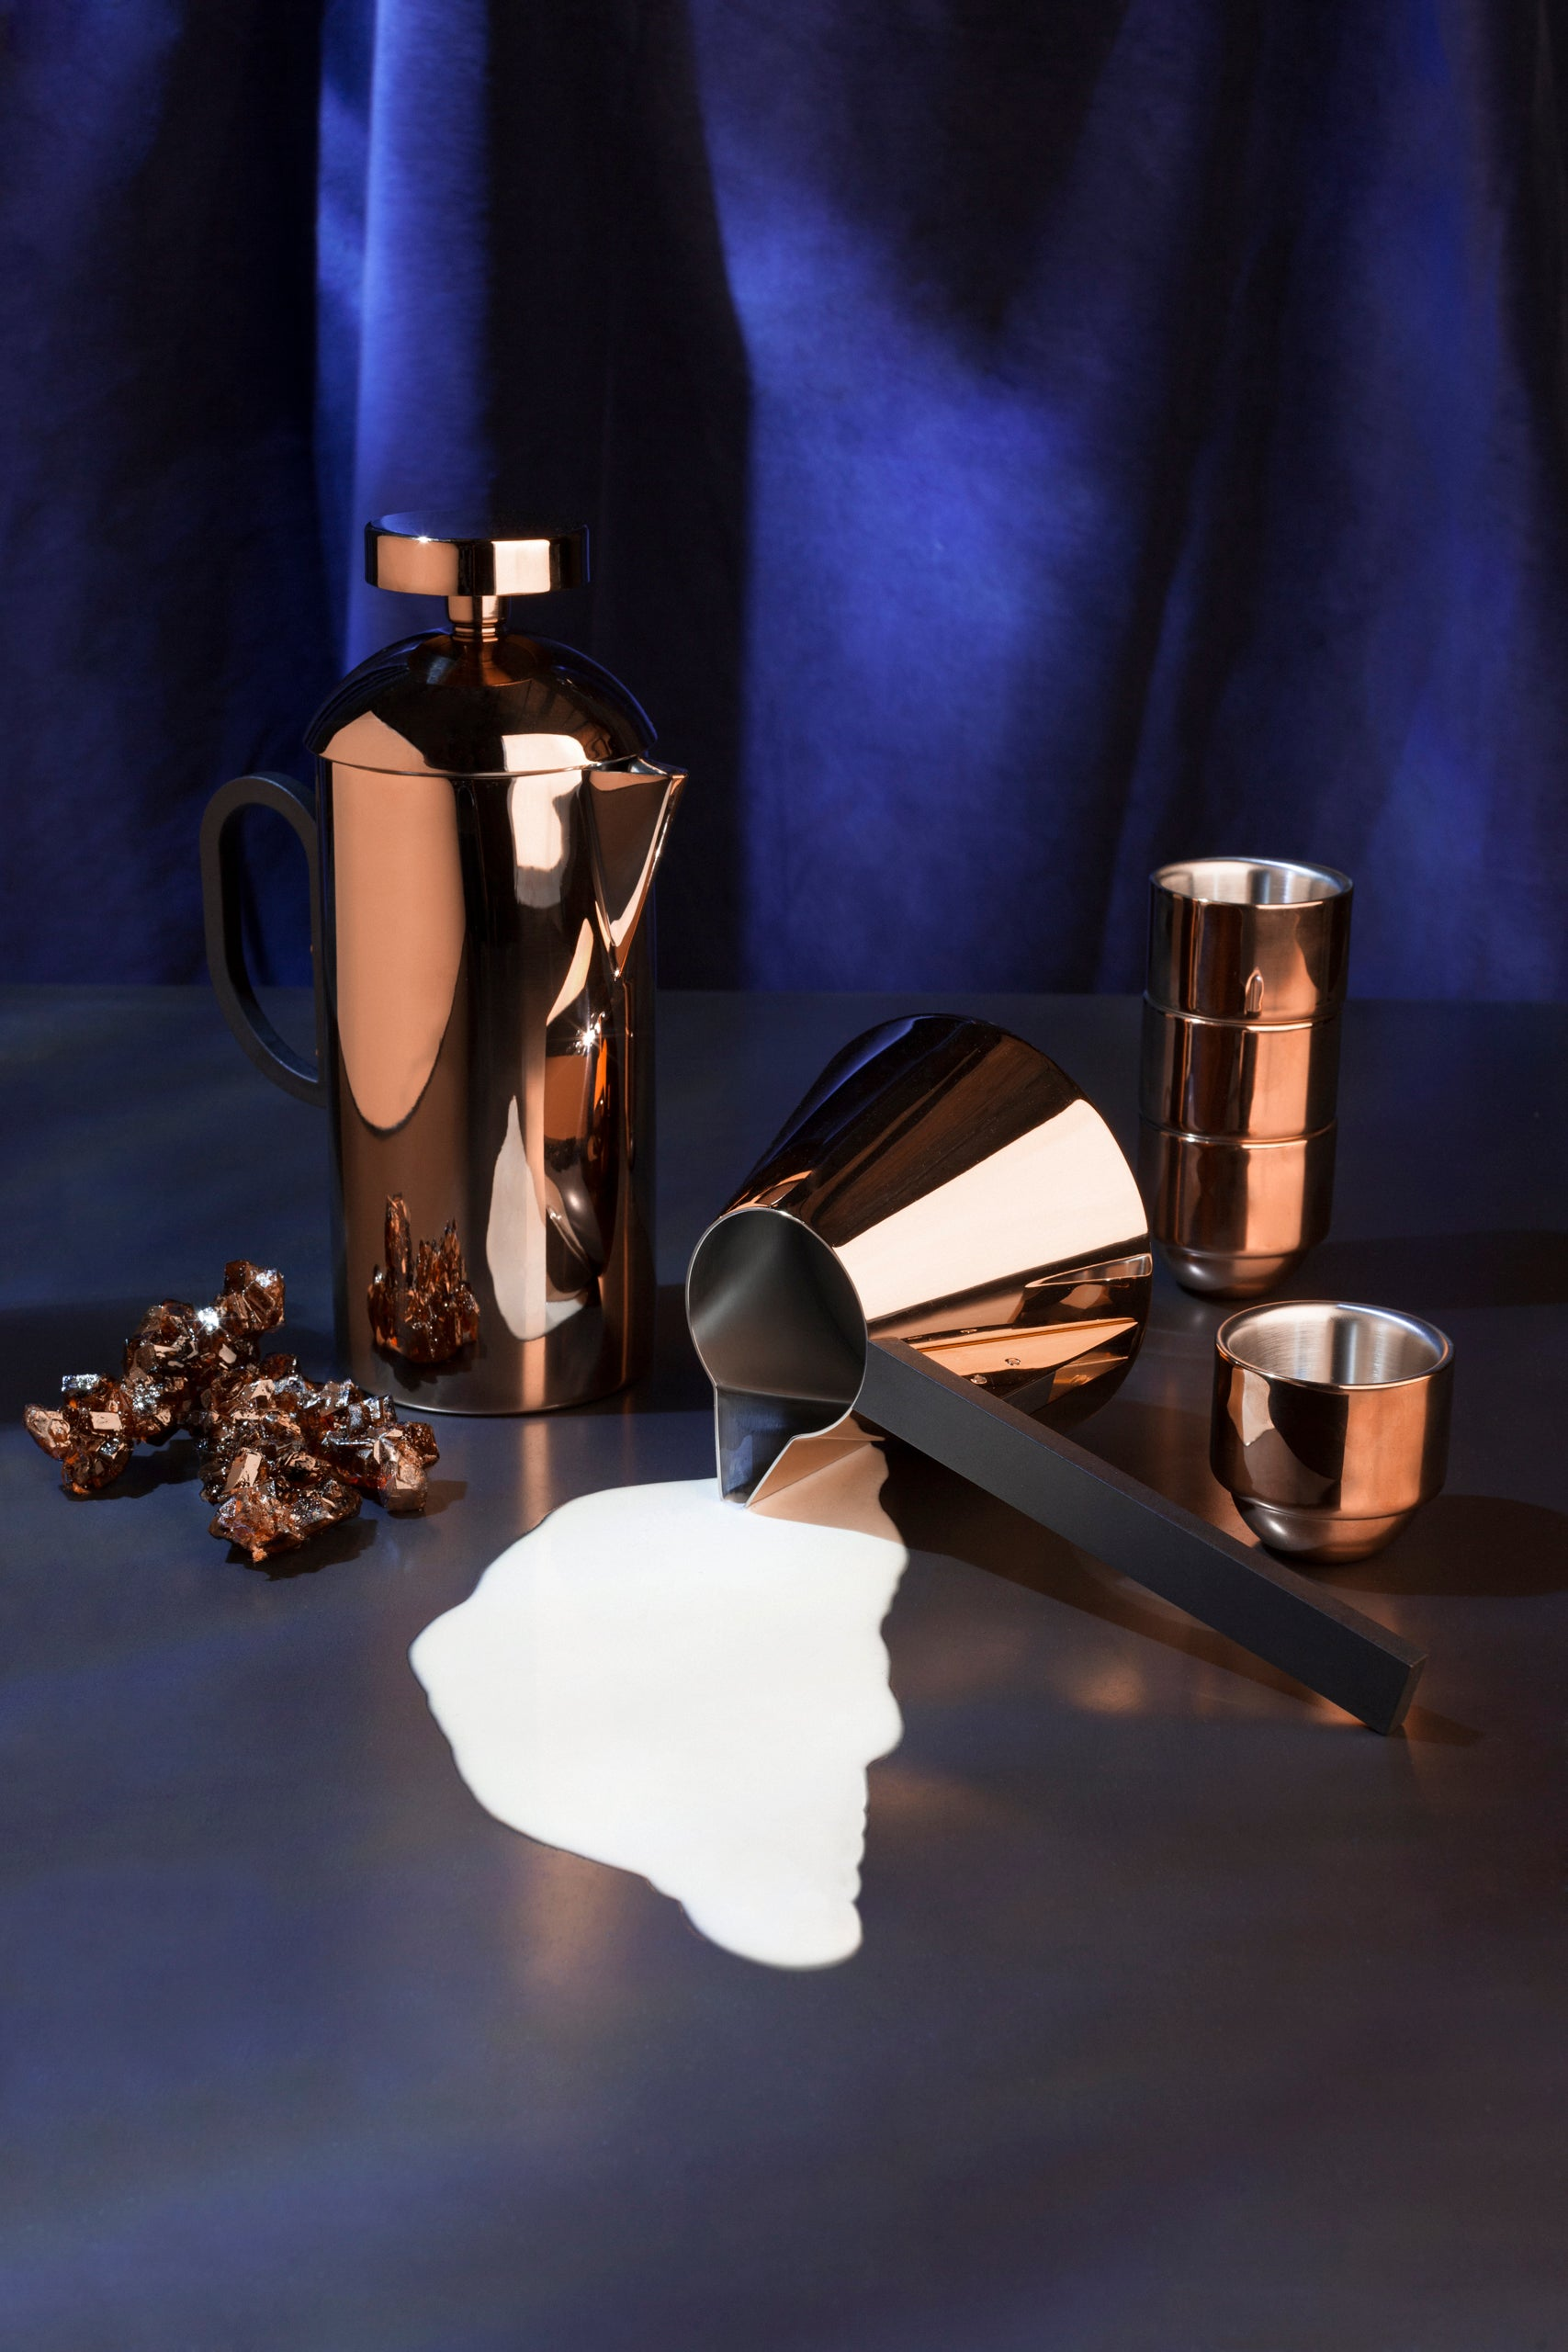 Tom Dixon copper brew collection